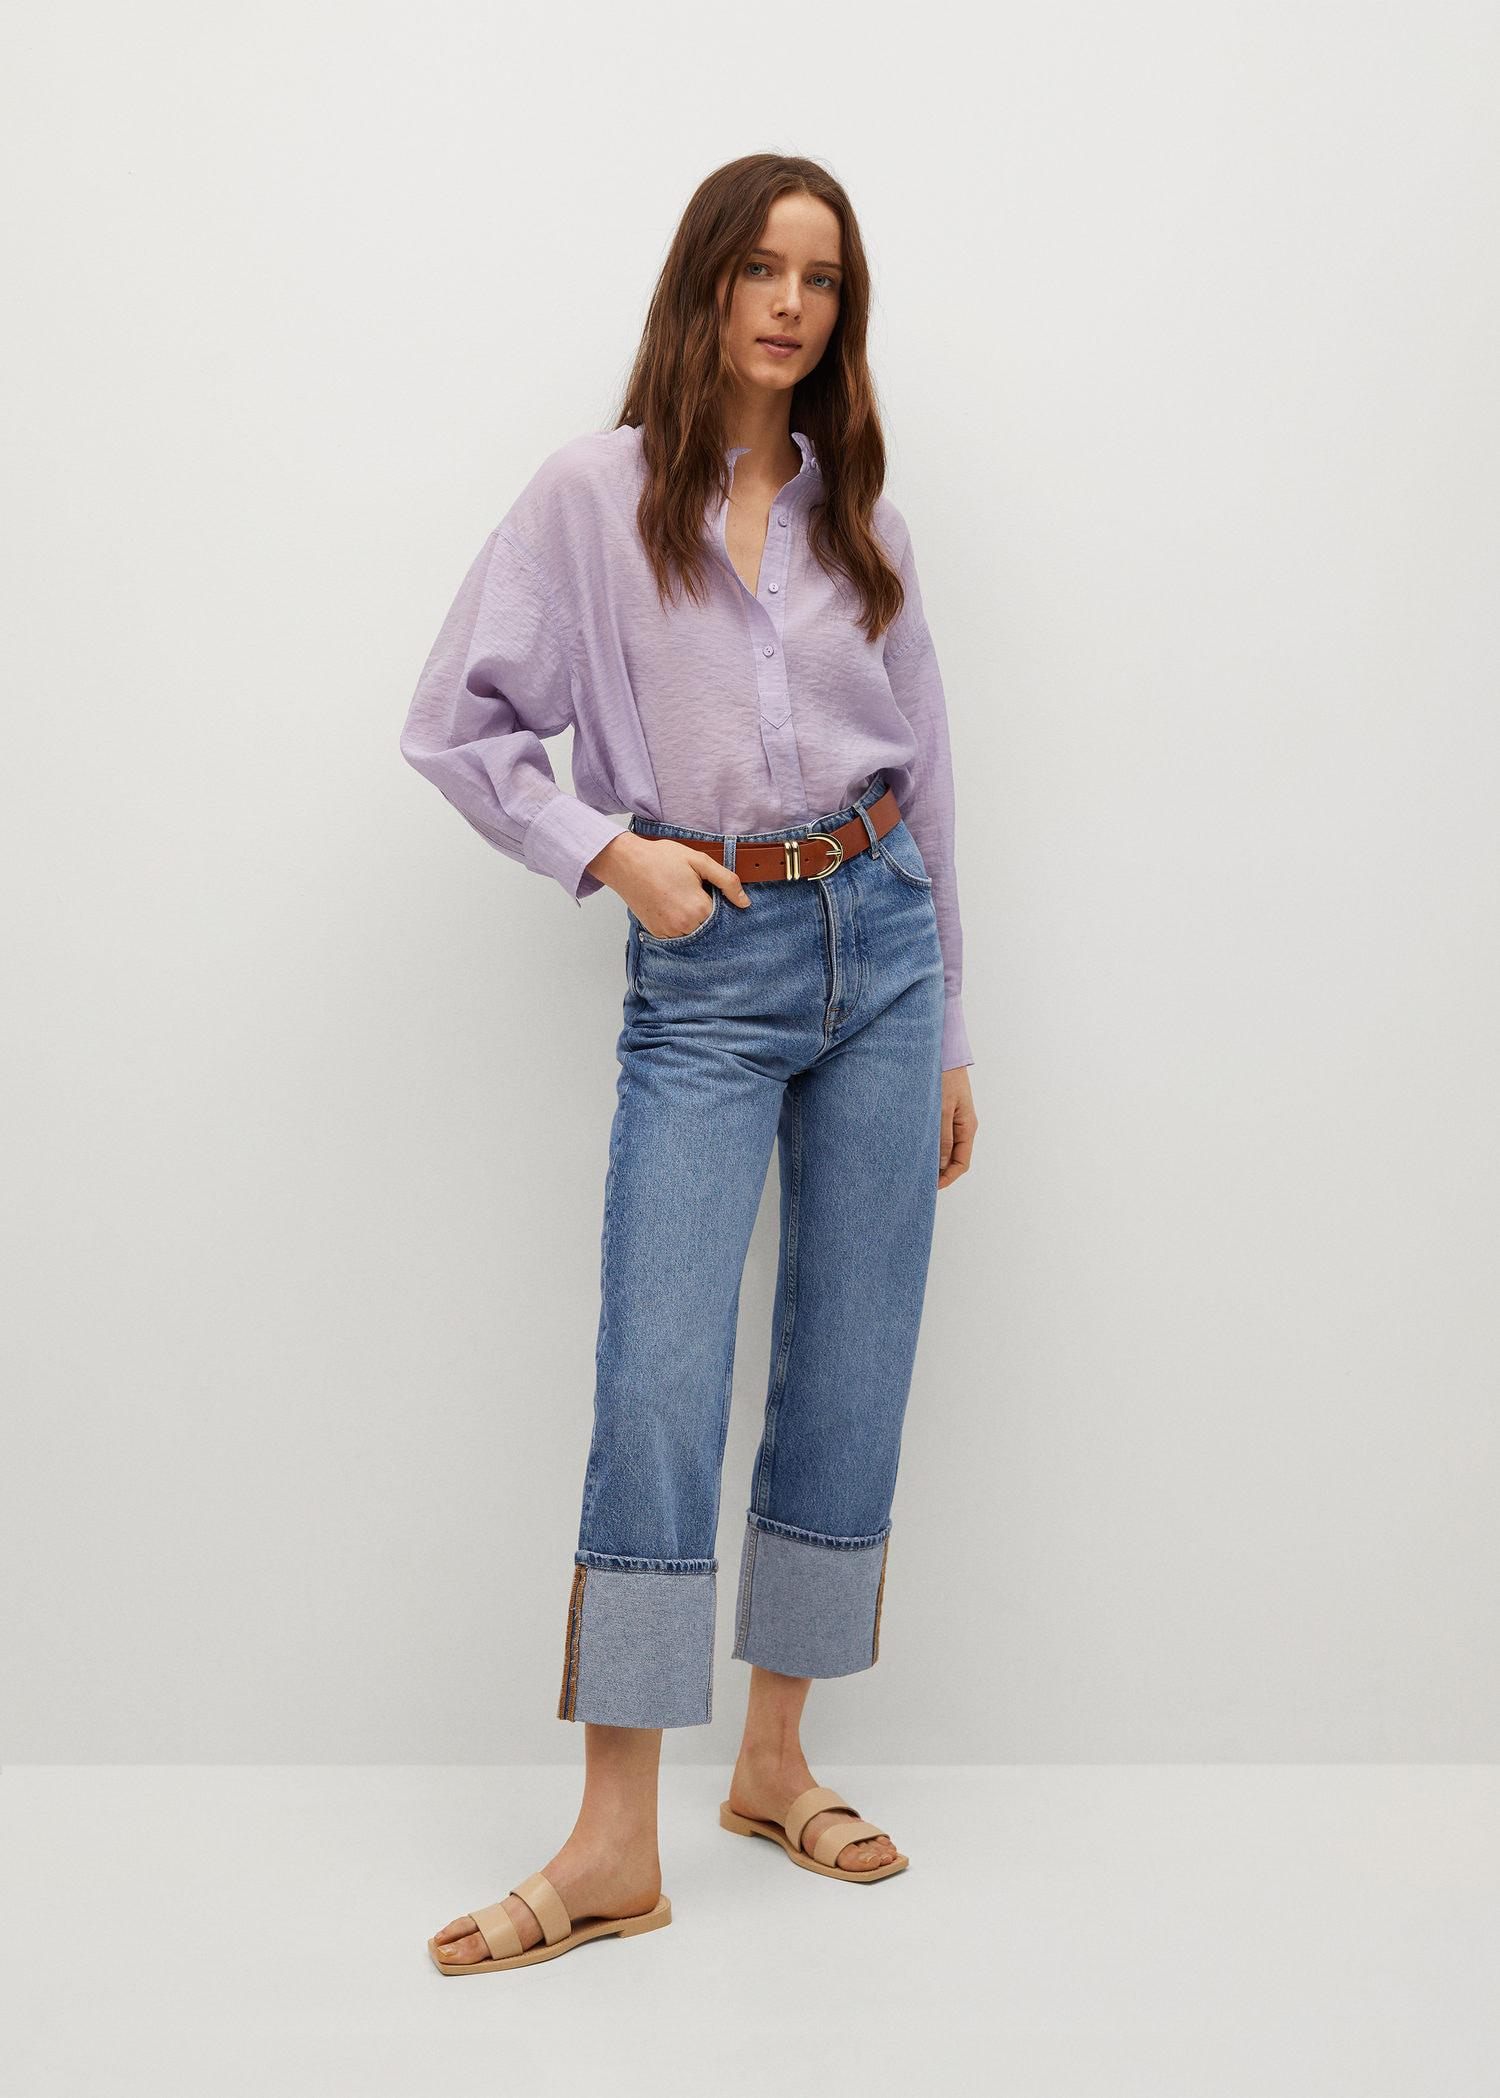 Textured flowy blouse 1